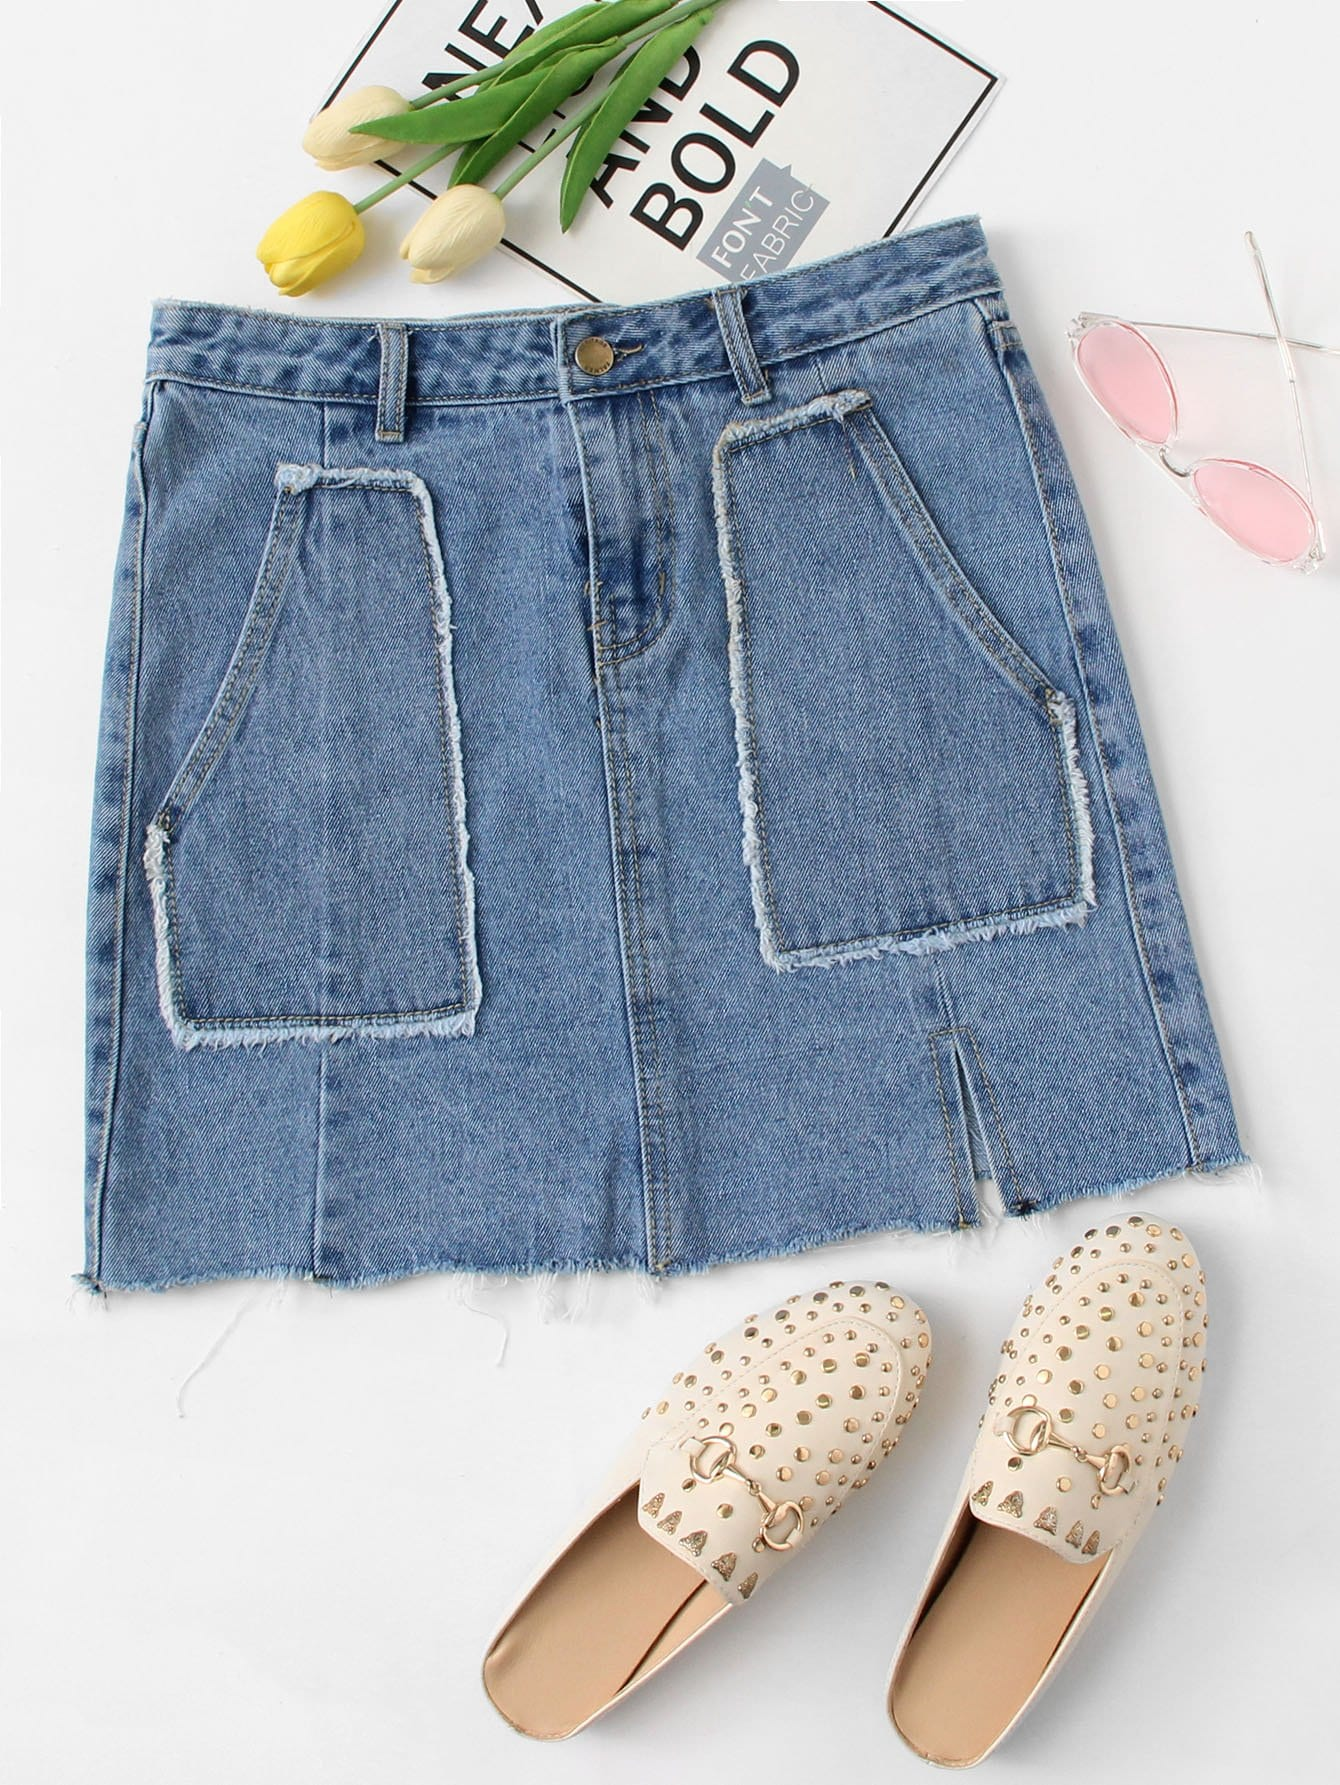 Dual Pocket Frayed Hem Denim Skirt ноутбук msi gp72m 7rdx 1238ru leopard 9s7 1799d3 1238 intel core i7 7700hq 2 8 ghz 16384mb 1000gb no odd nvidia geforce gtx 1050 4096mb wi fi bluetooth cam 17 3 1920x1080 windows 10 64 bit